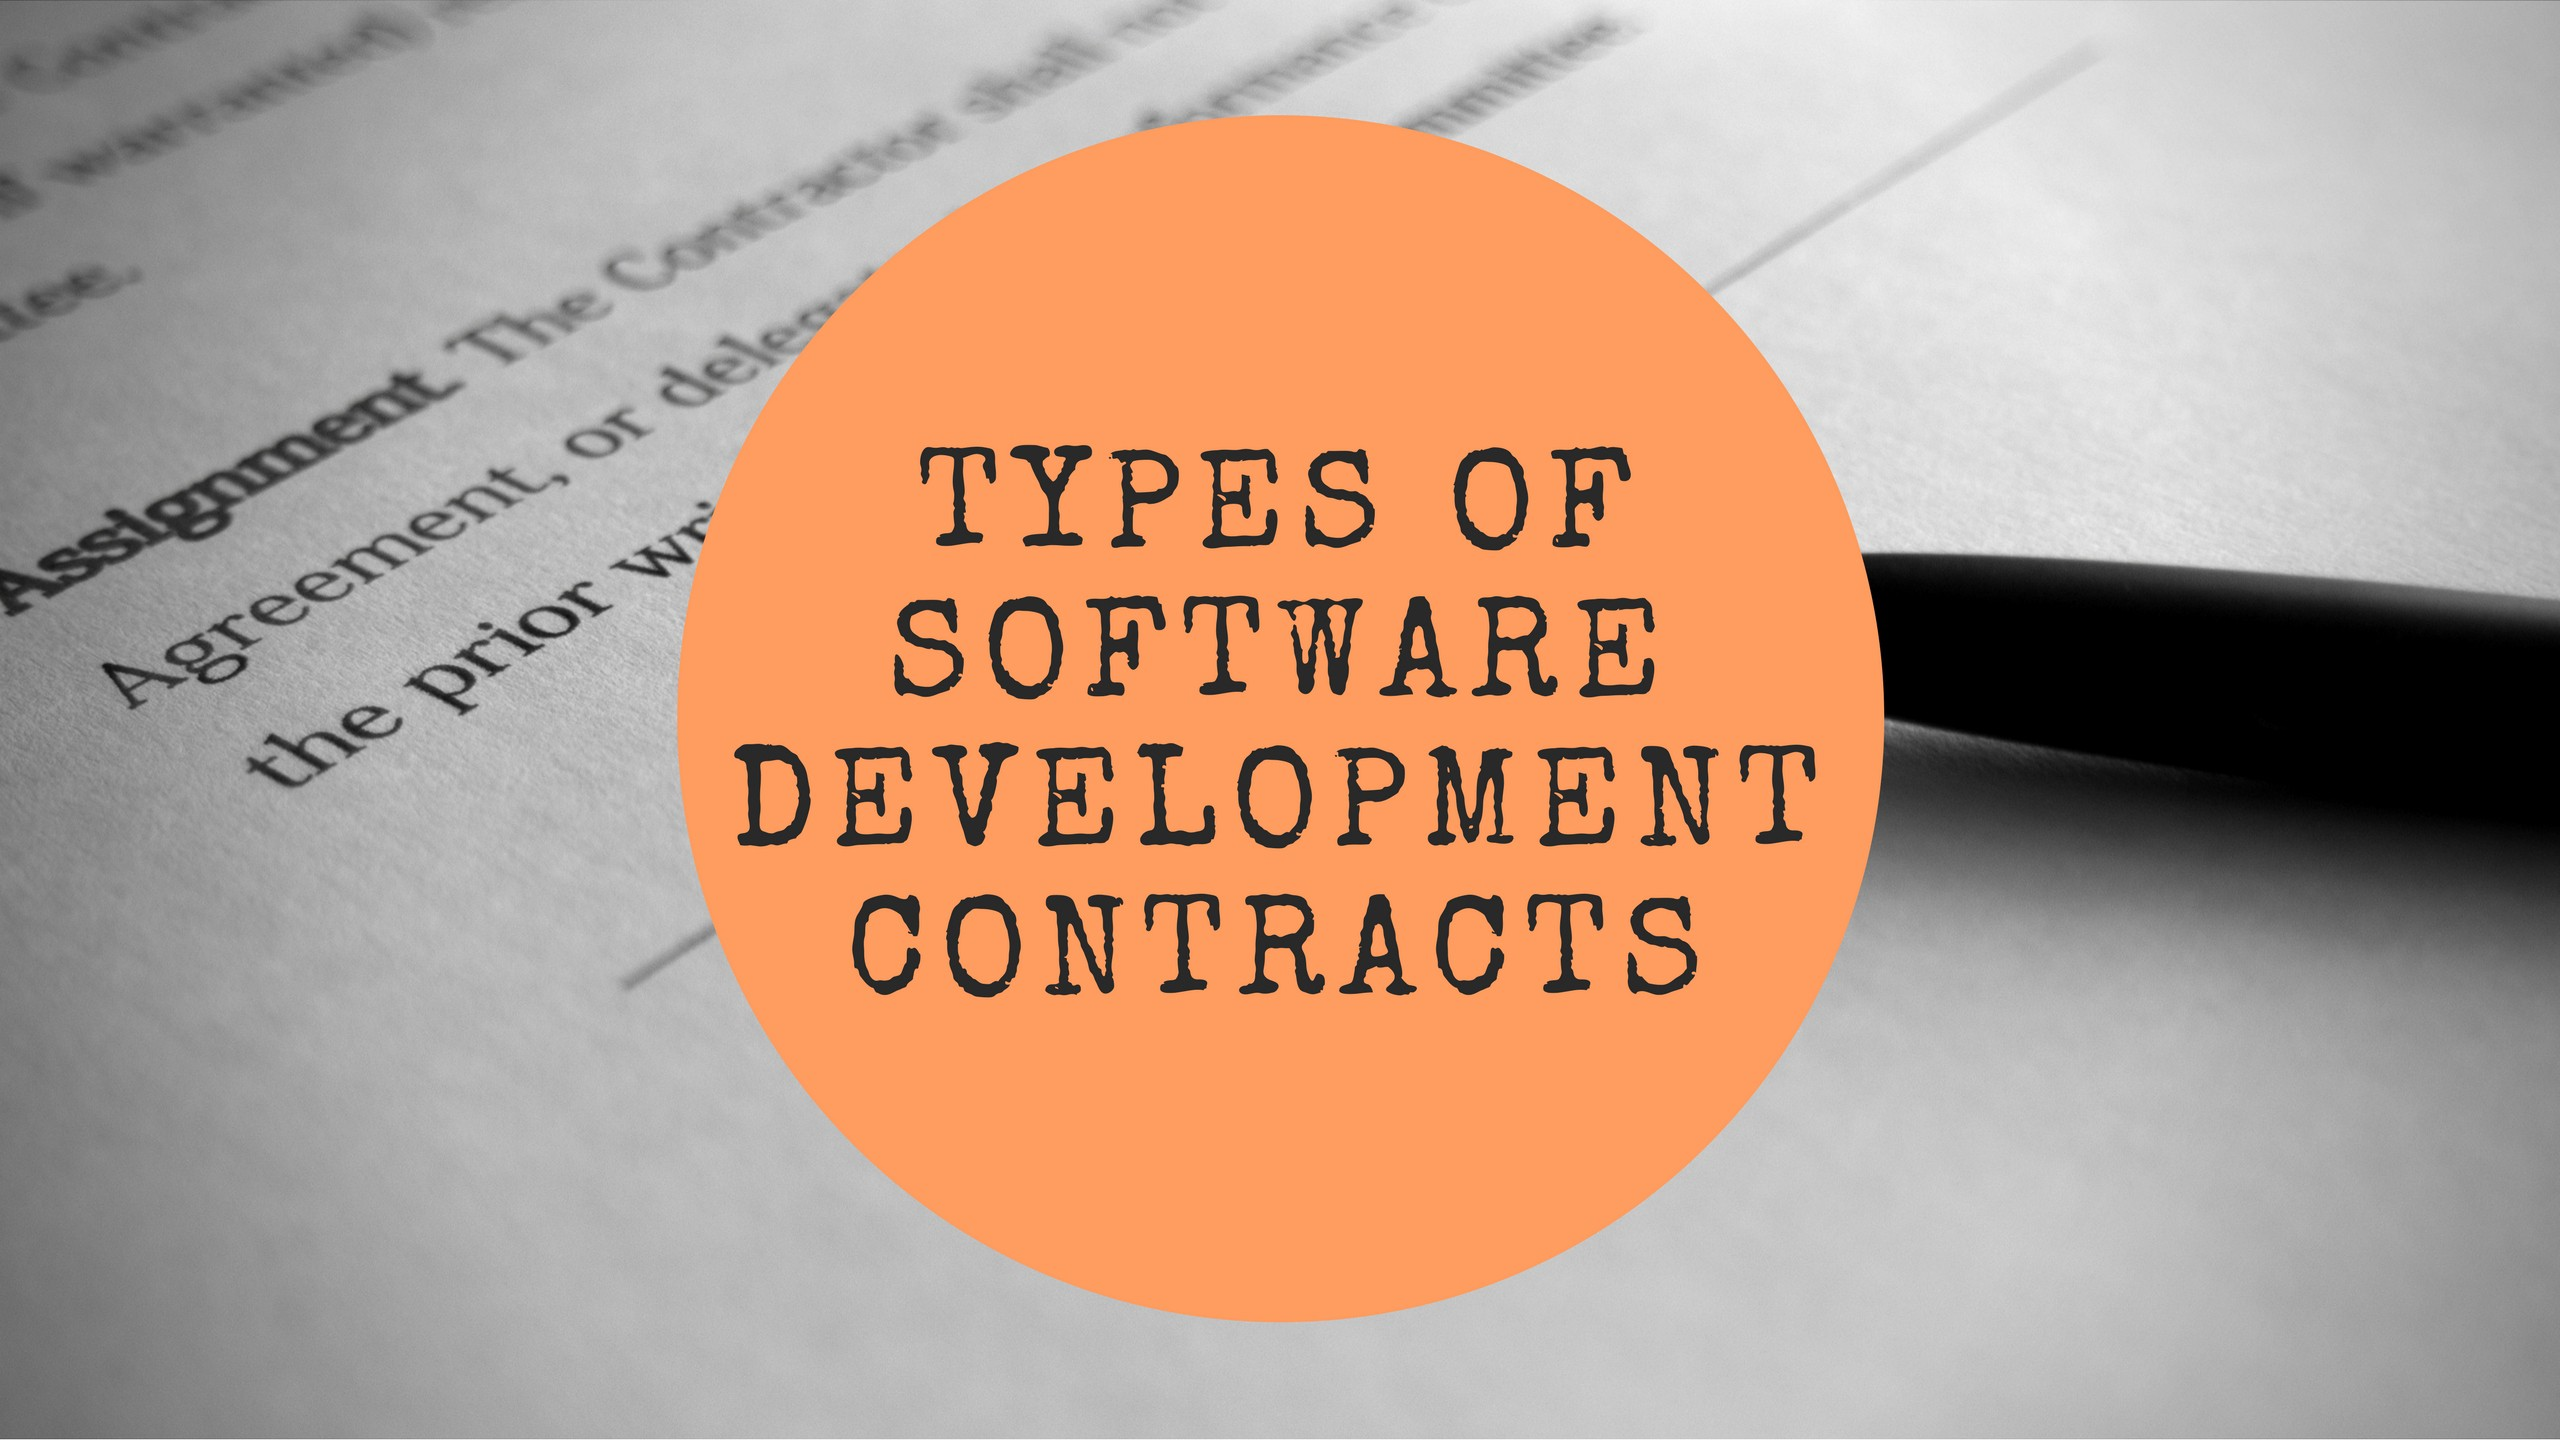 What Are The Different Types Of Software Development Contracts?